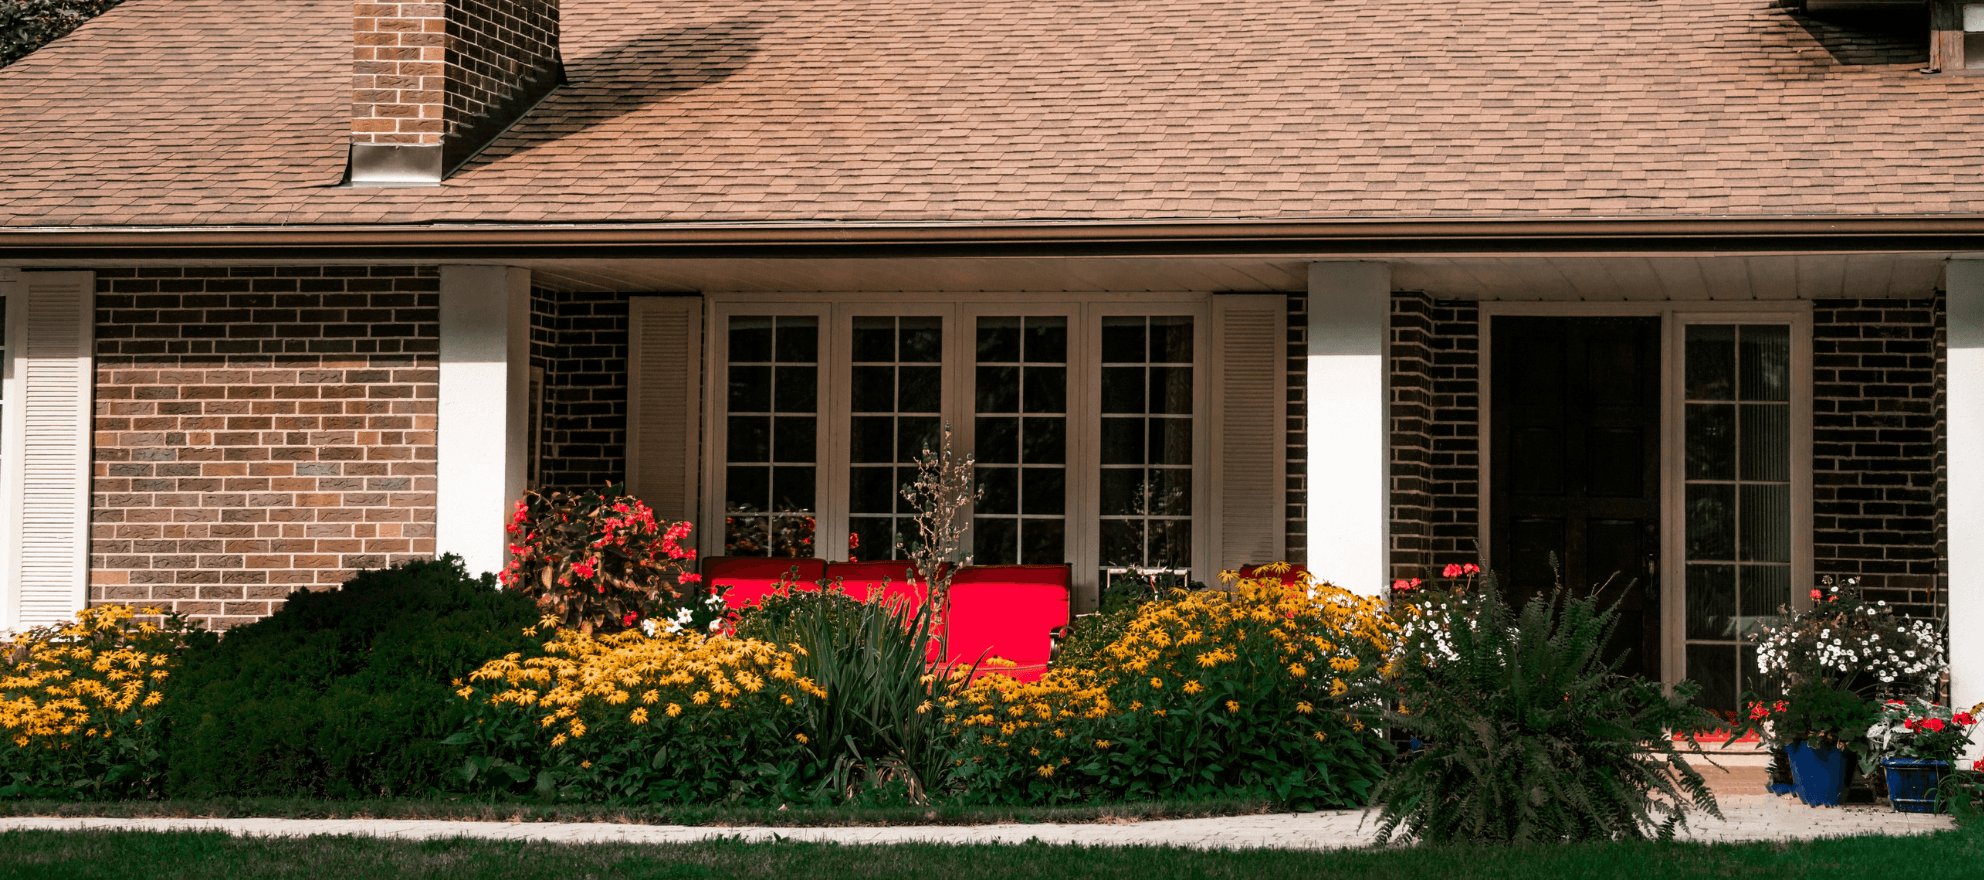 a suburban bungalow with a collection of flowers